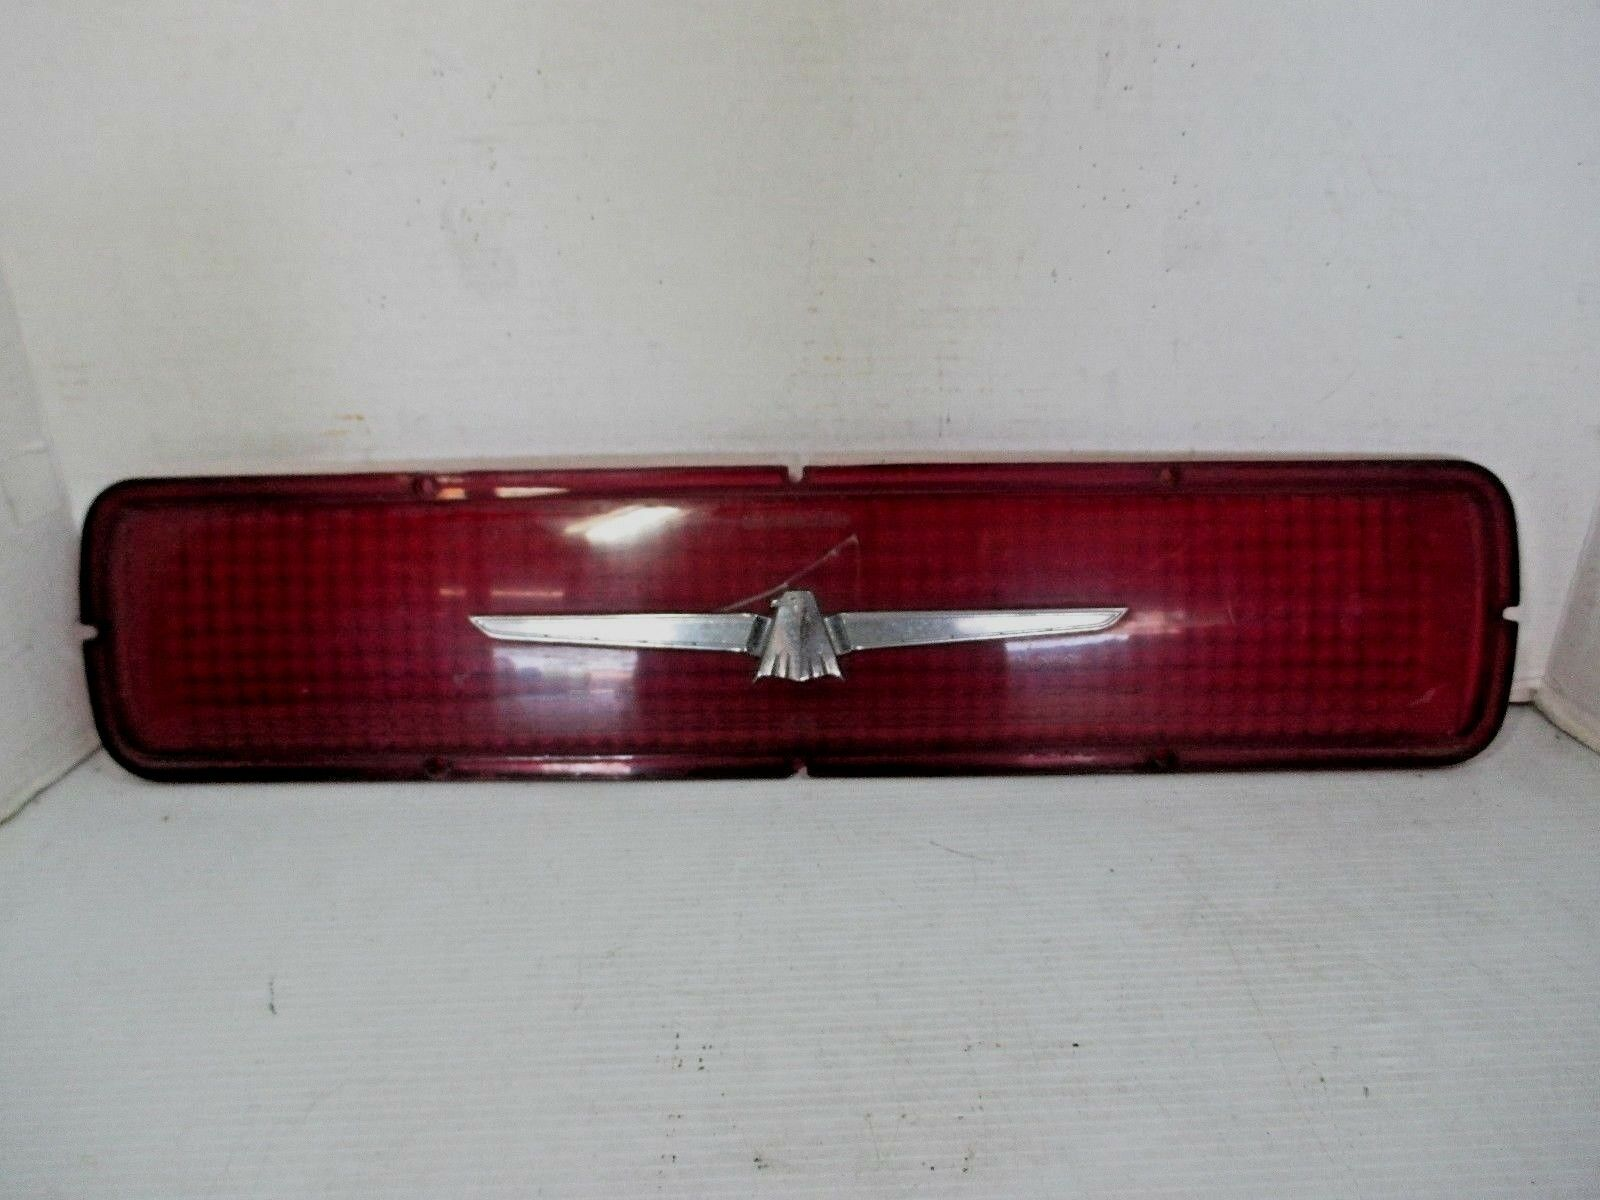 Vintage 1964 Ford Thunderbird Tail Light Lenses Nos Ebay Norton Secured Powered By Verisign